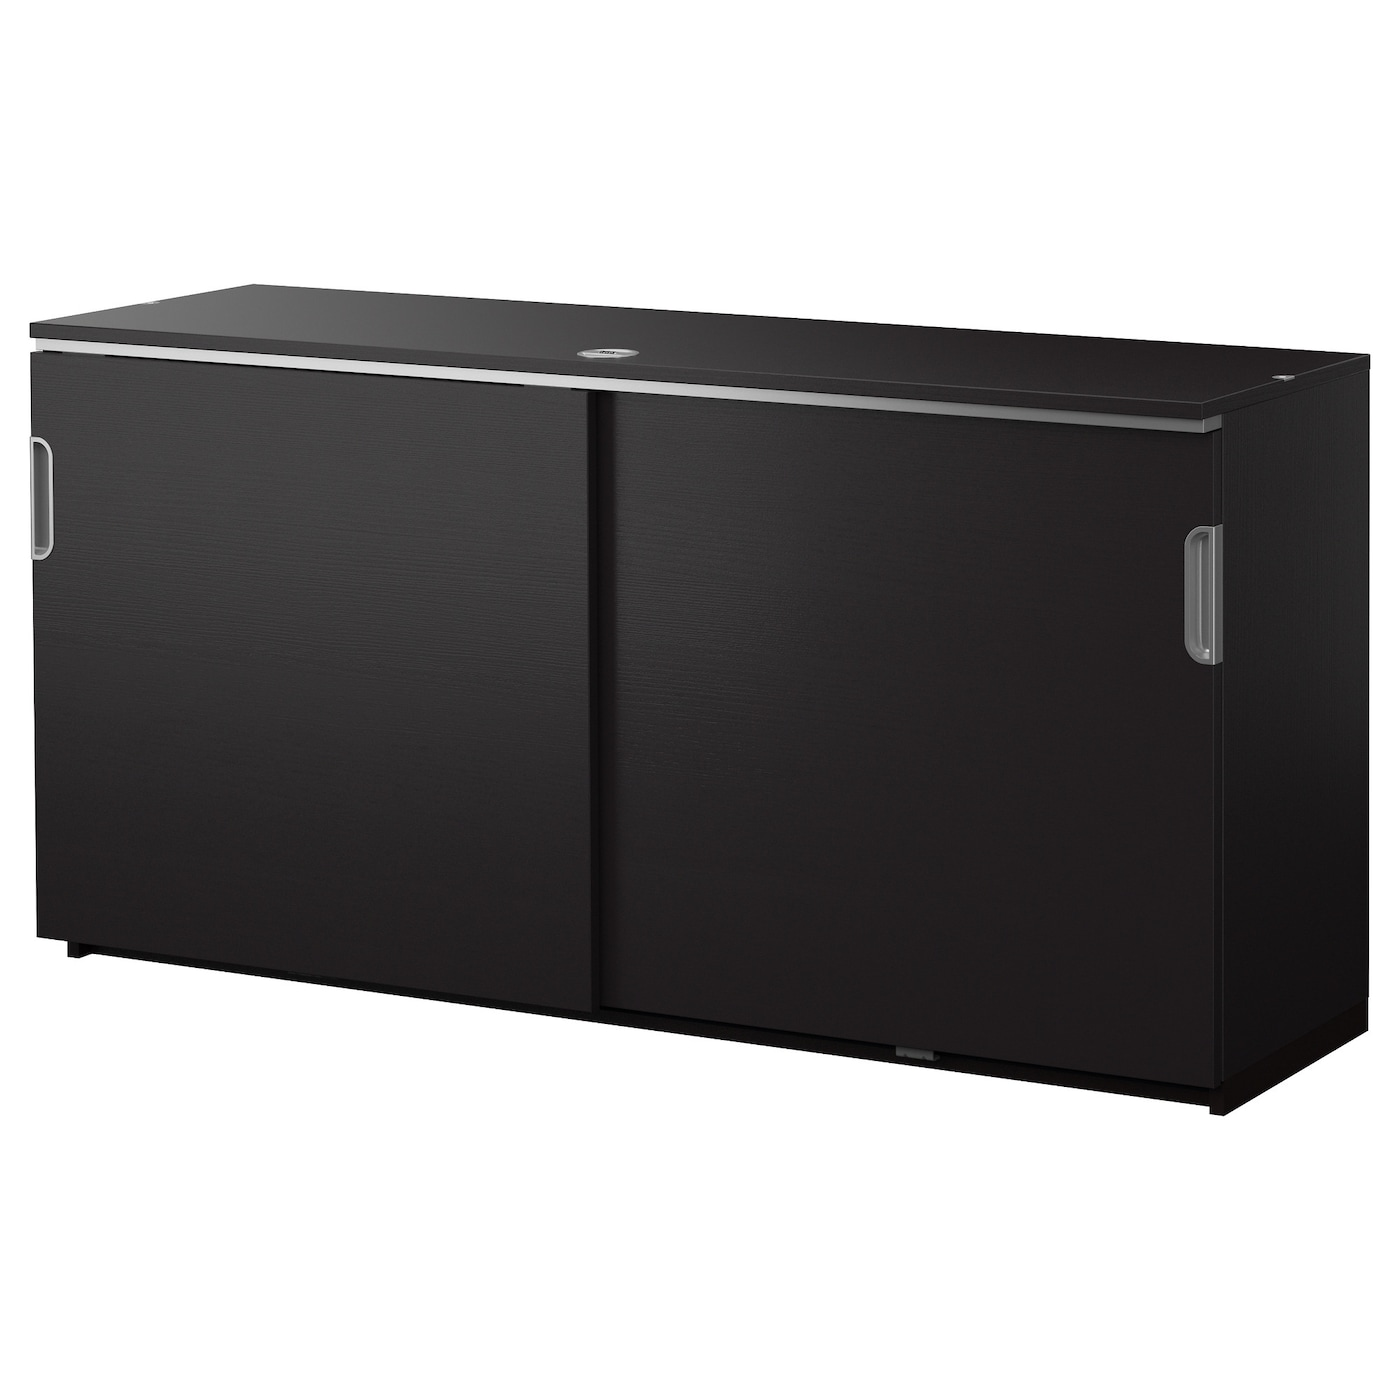 Galant Cabinet With Sliding Doors Black Brown 160x80 Cm Ikea